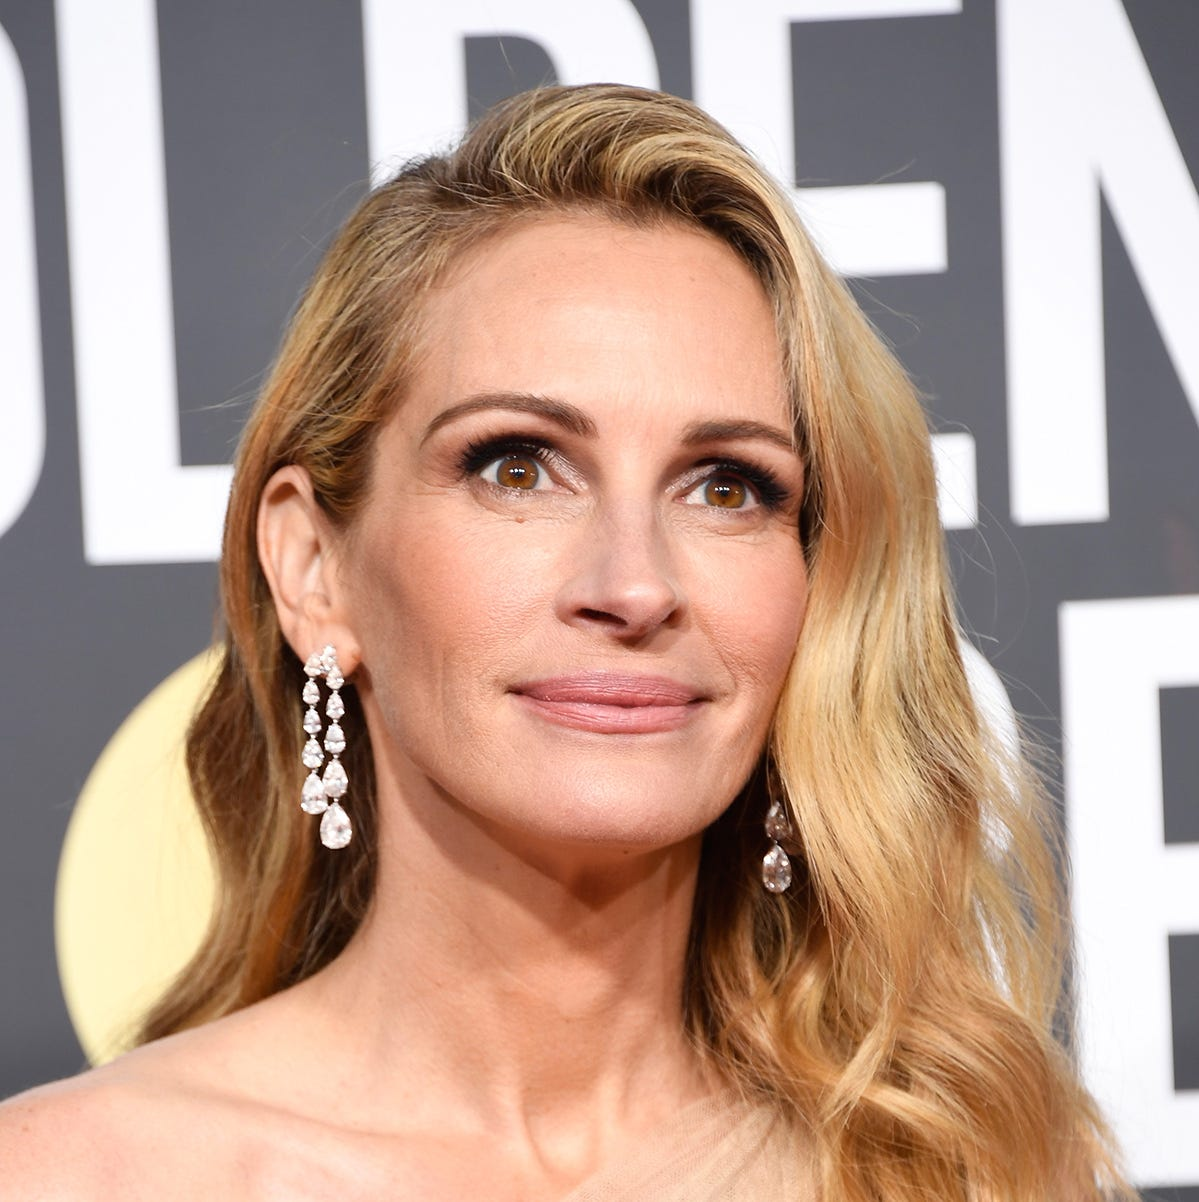 Here's where Rochester thinks Julia Roberts should eat when she visits